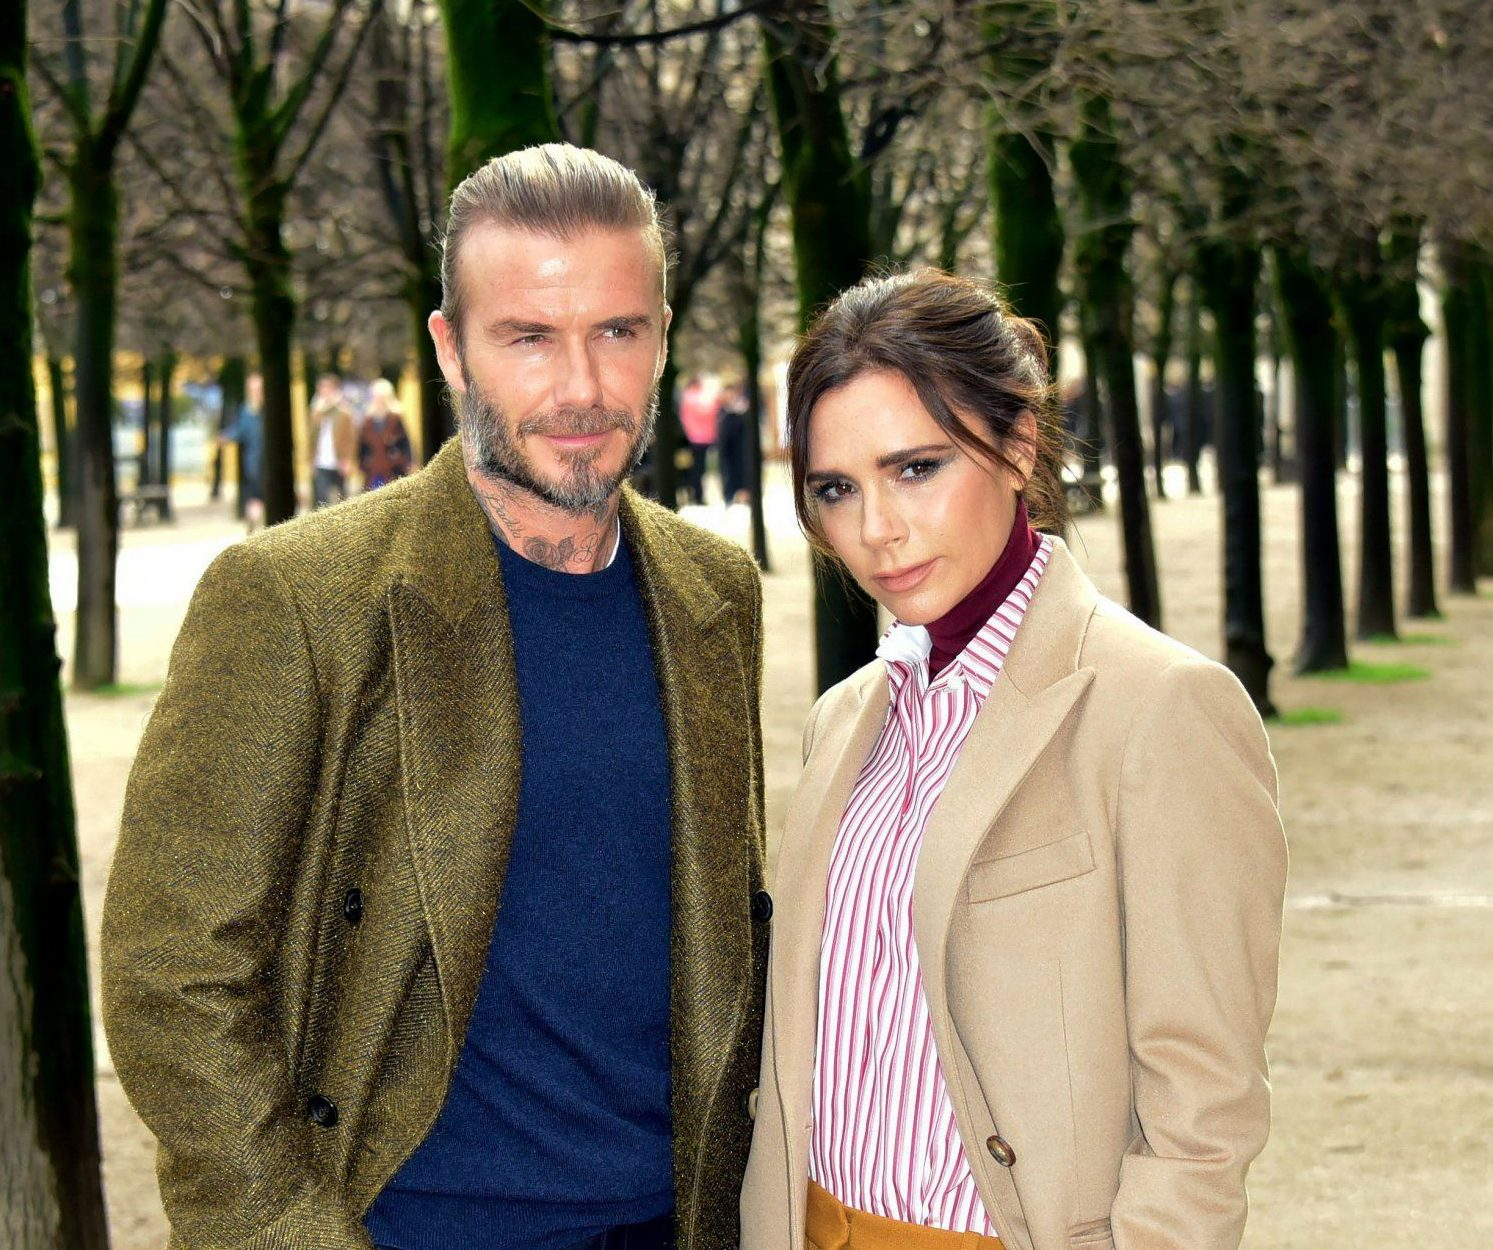 Mandatory Credit: Photo by LAURENT BENHAMOU/SIPA/REX/Shutterstock (9325461j) David Beckham, Victoria Beckham Louis Vuitton show, Arrivals, Fall Winter 2018, Paris Fashion Week Men's, France - 18 Jan 2018